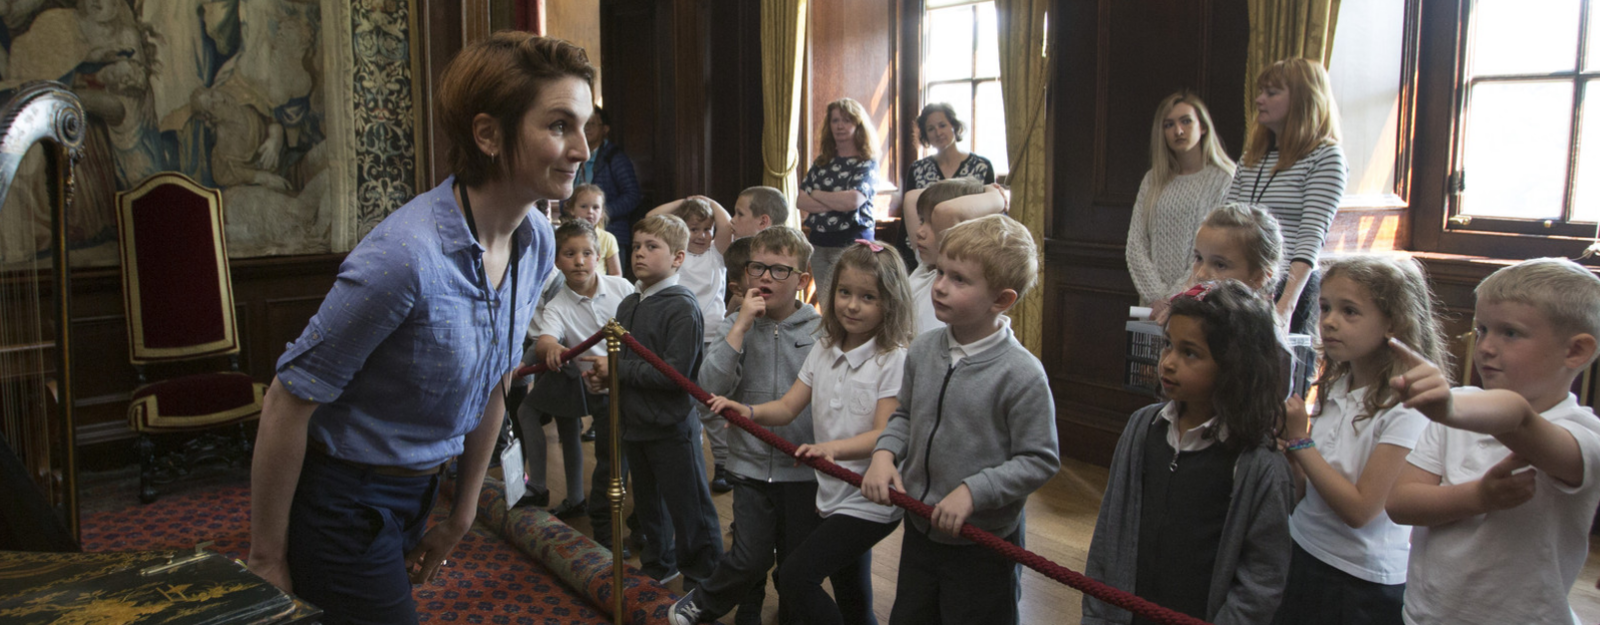 Pupils inside the Palace of Holyroodhouse